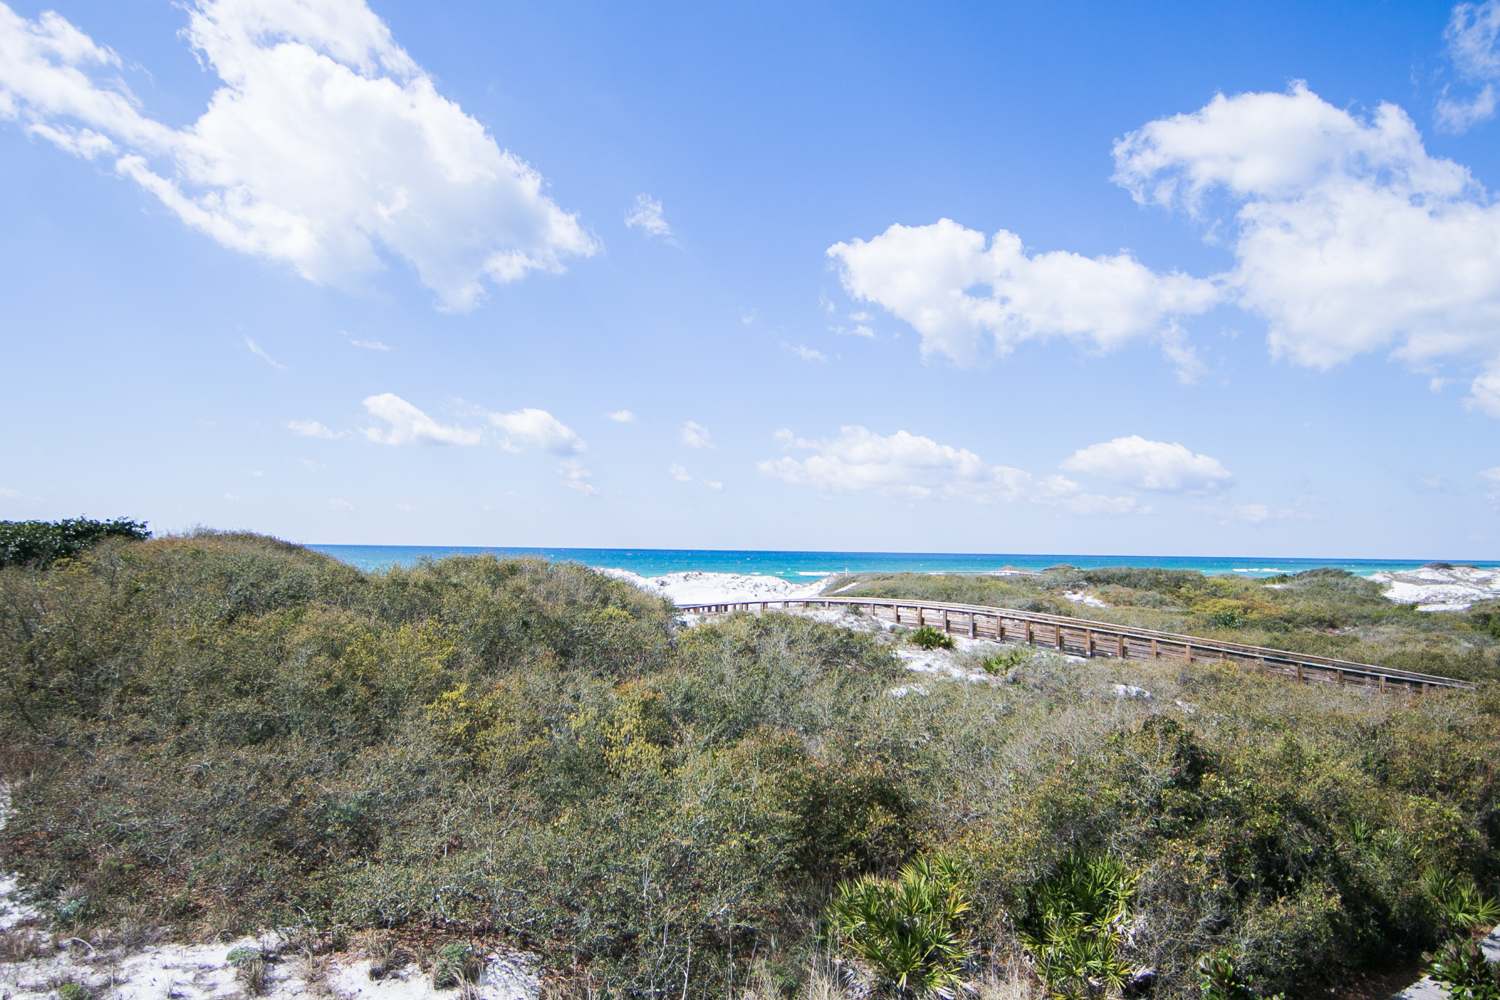 Unit 308 in Compass Point is the perfect location for your beach vacation!